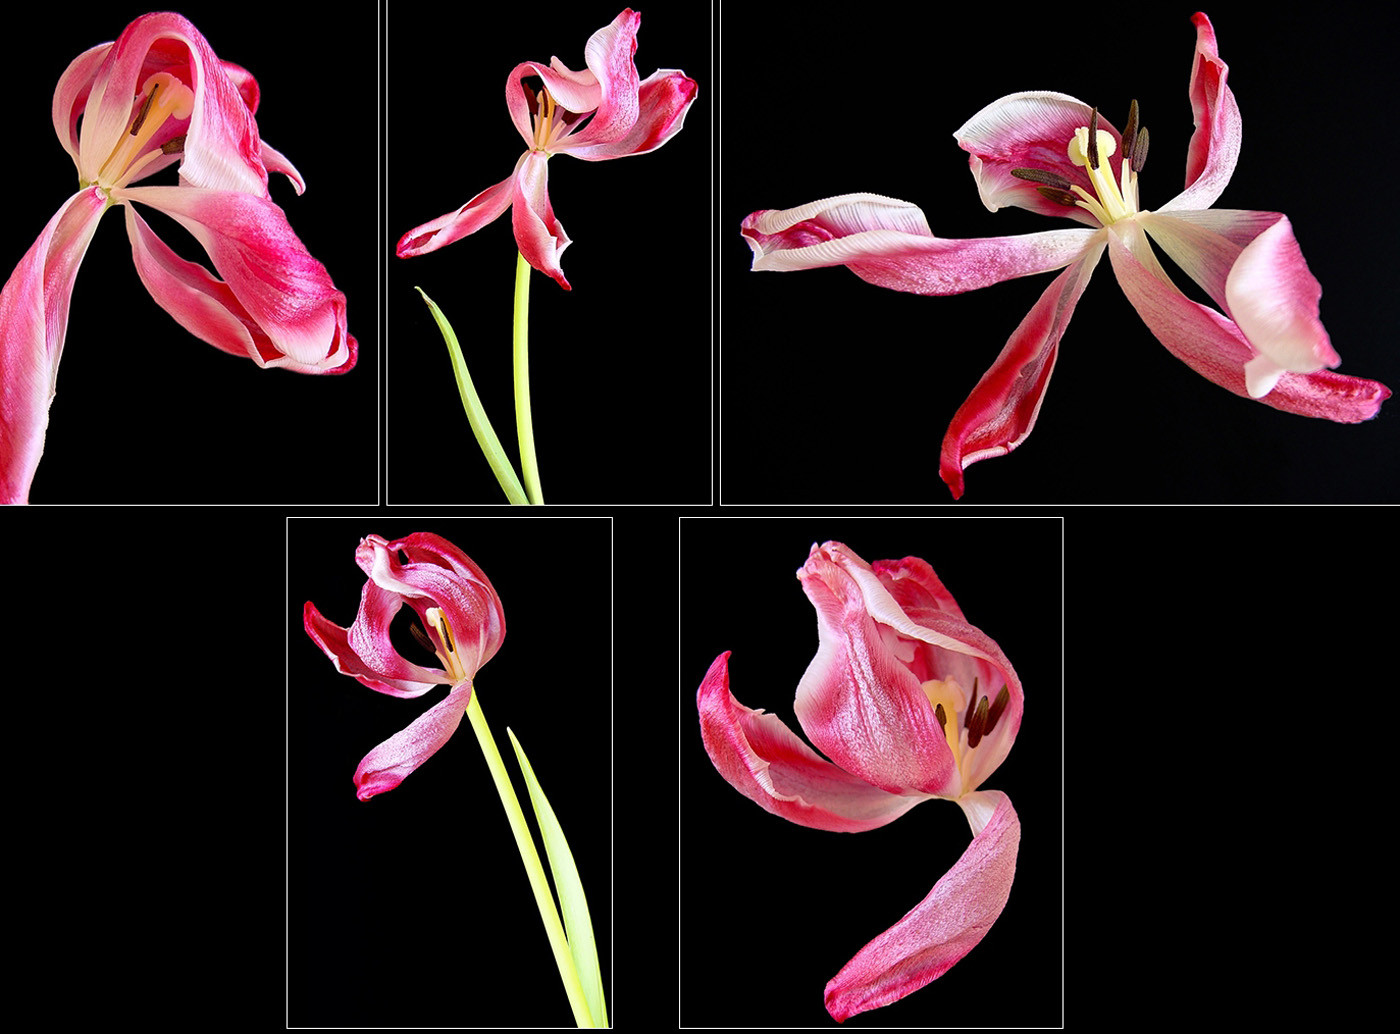 18 IMPRESSIONS FROM A DYING TULIP by Peter Tulloch